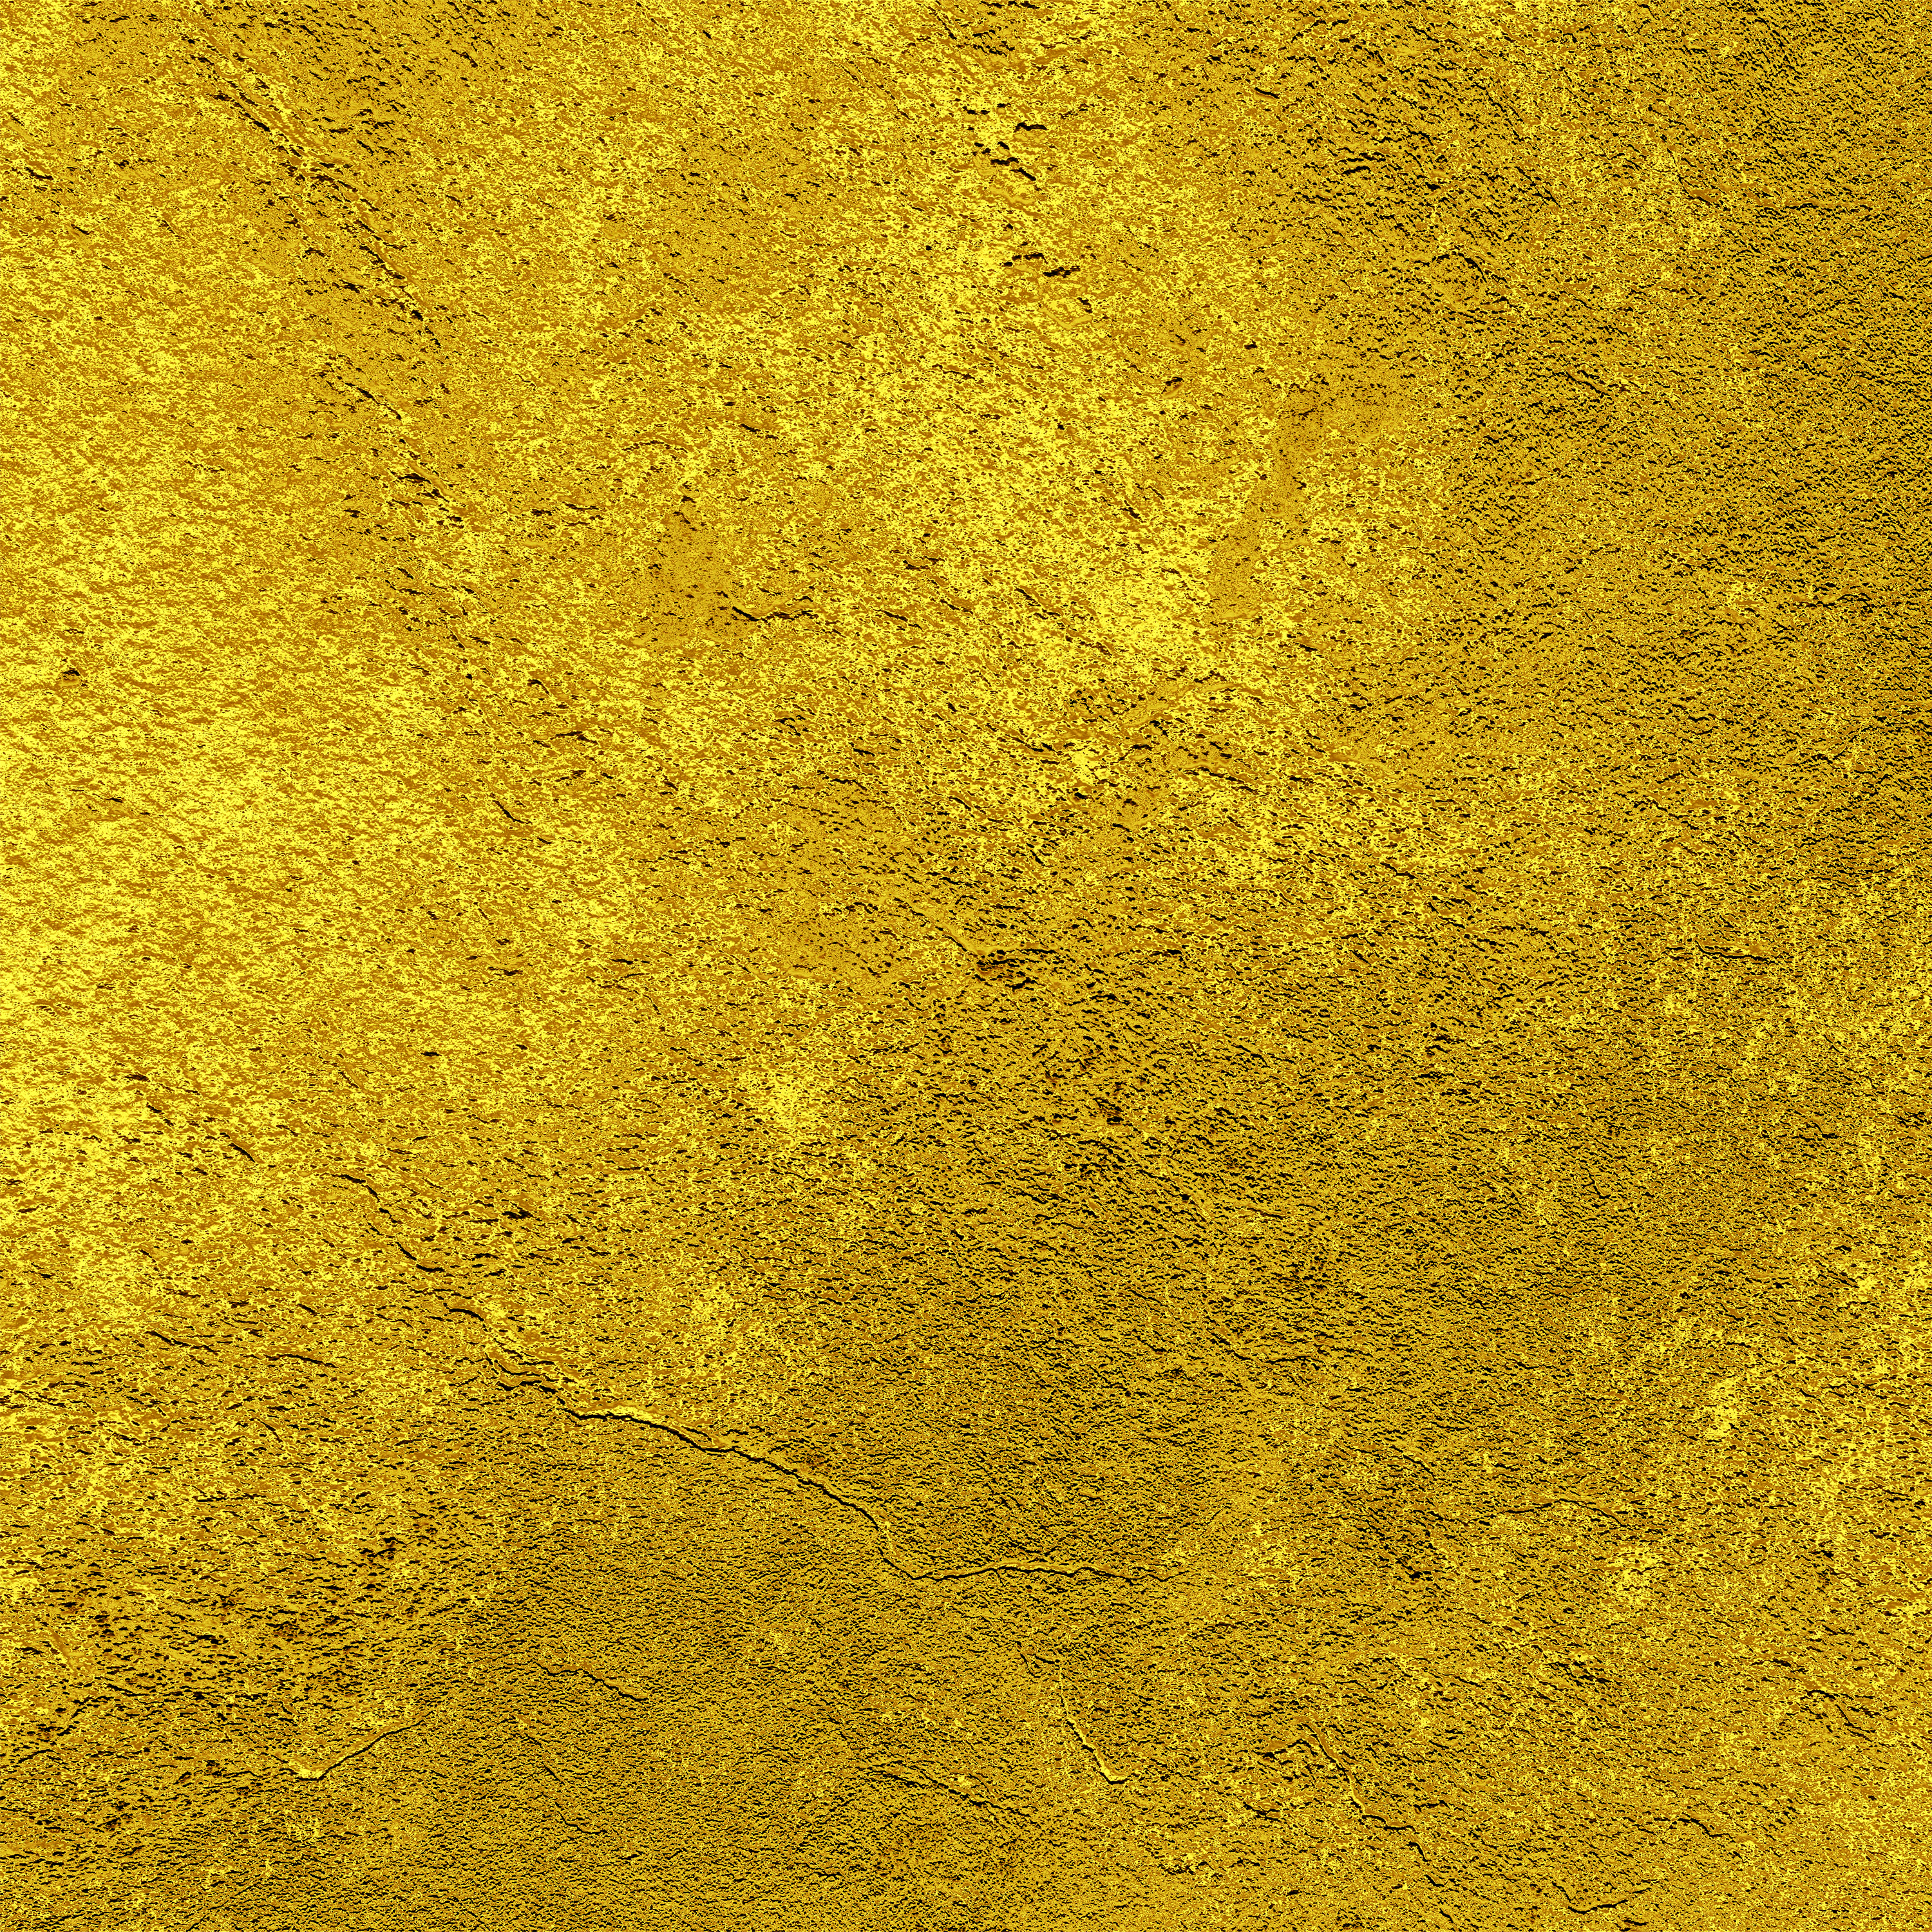 Gold Clipart Background.